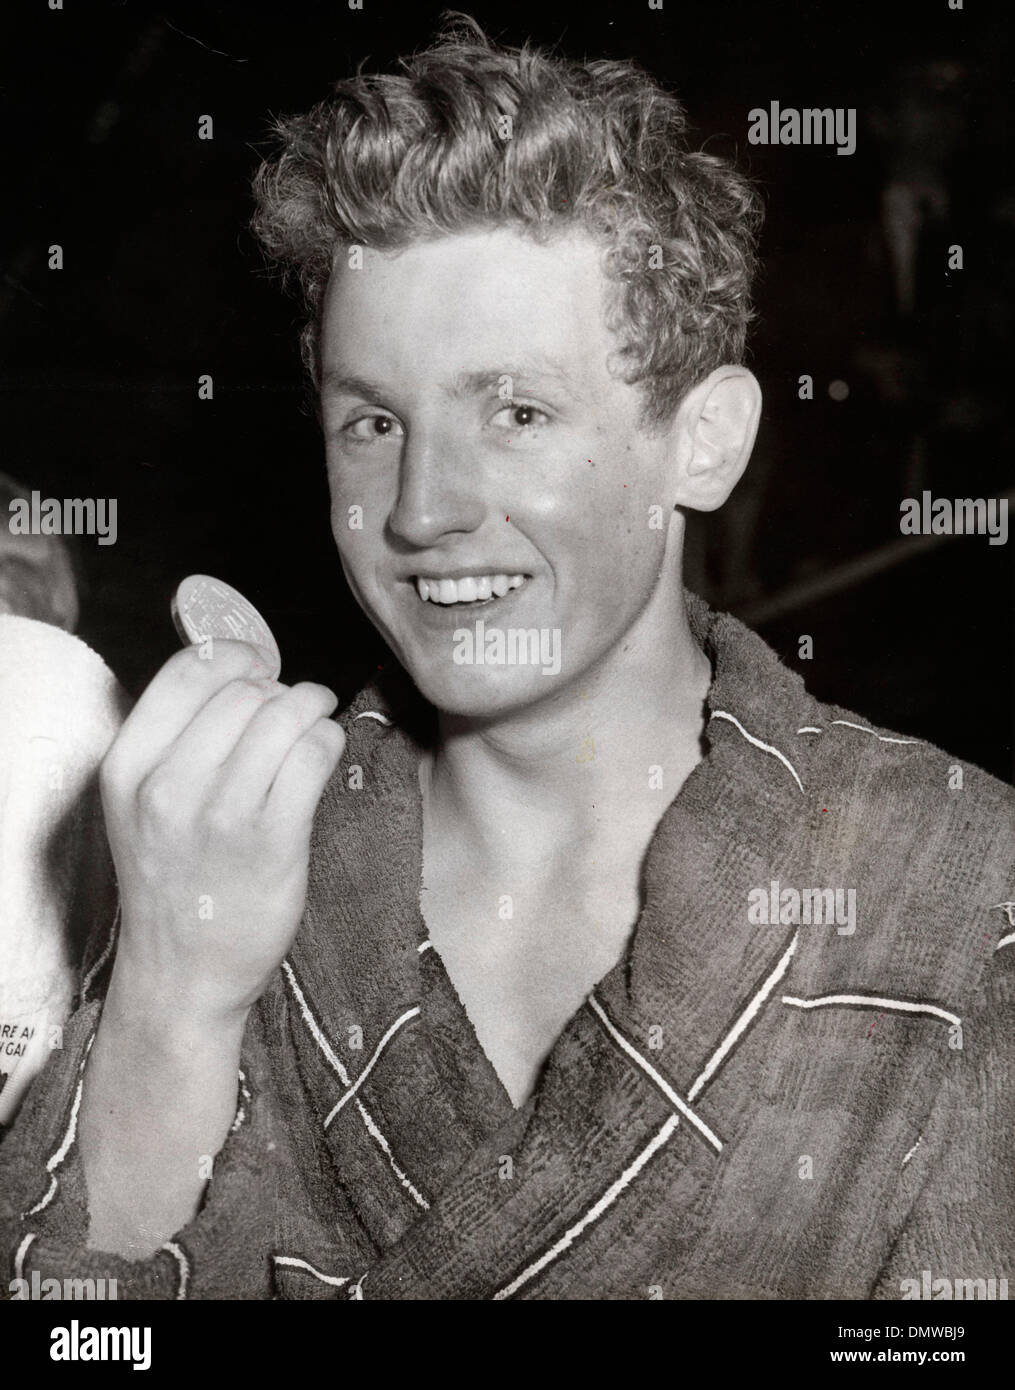 July 25, 1958 - London, England, U.K. - Scottish IAN BLACK was a champion swimmer as well as BBC Sports Personality of the Year. PICTURED: Black proudly displays his gold medal after he had won the 220 yards Butterfly swim at the Empire Pool last night. His time 2min. 22.6 secs. was only 2.6secs outside the world record.  (Credit Image: © KEYSTONE Pictures USA/ZUMAPRESS.com) - Stock Image